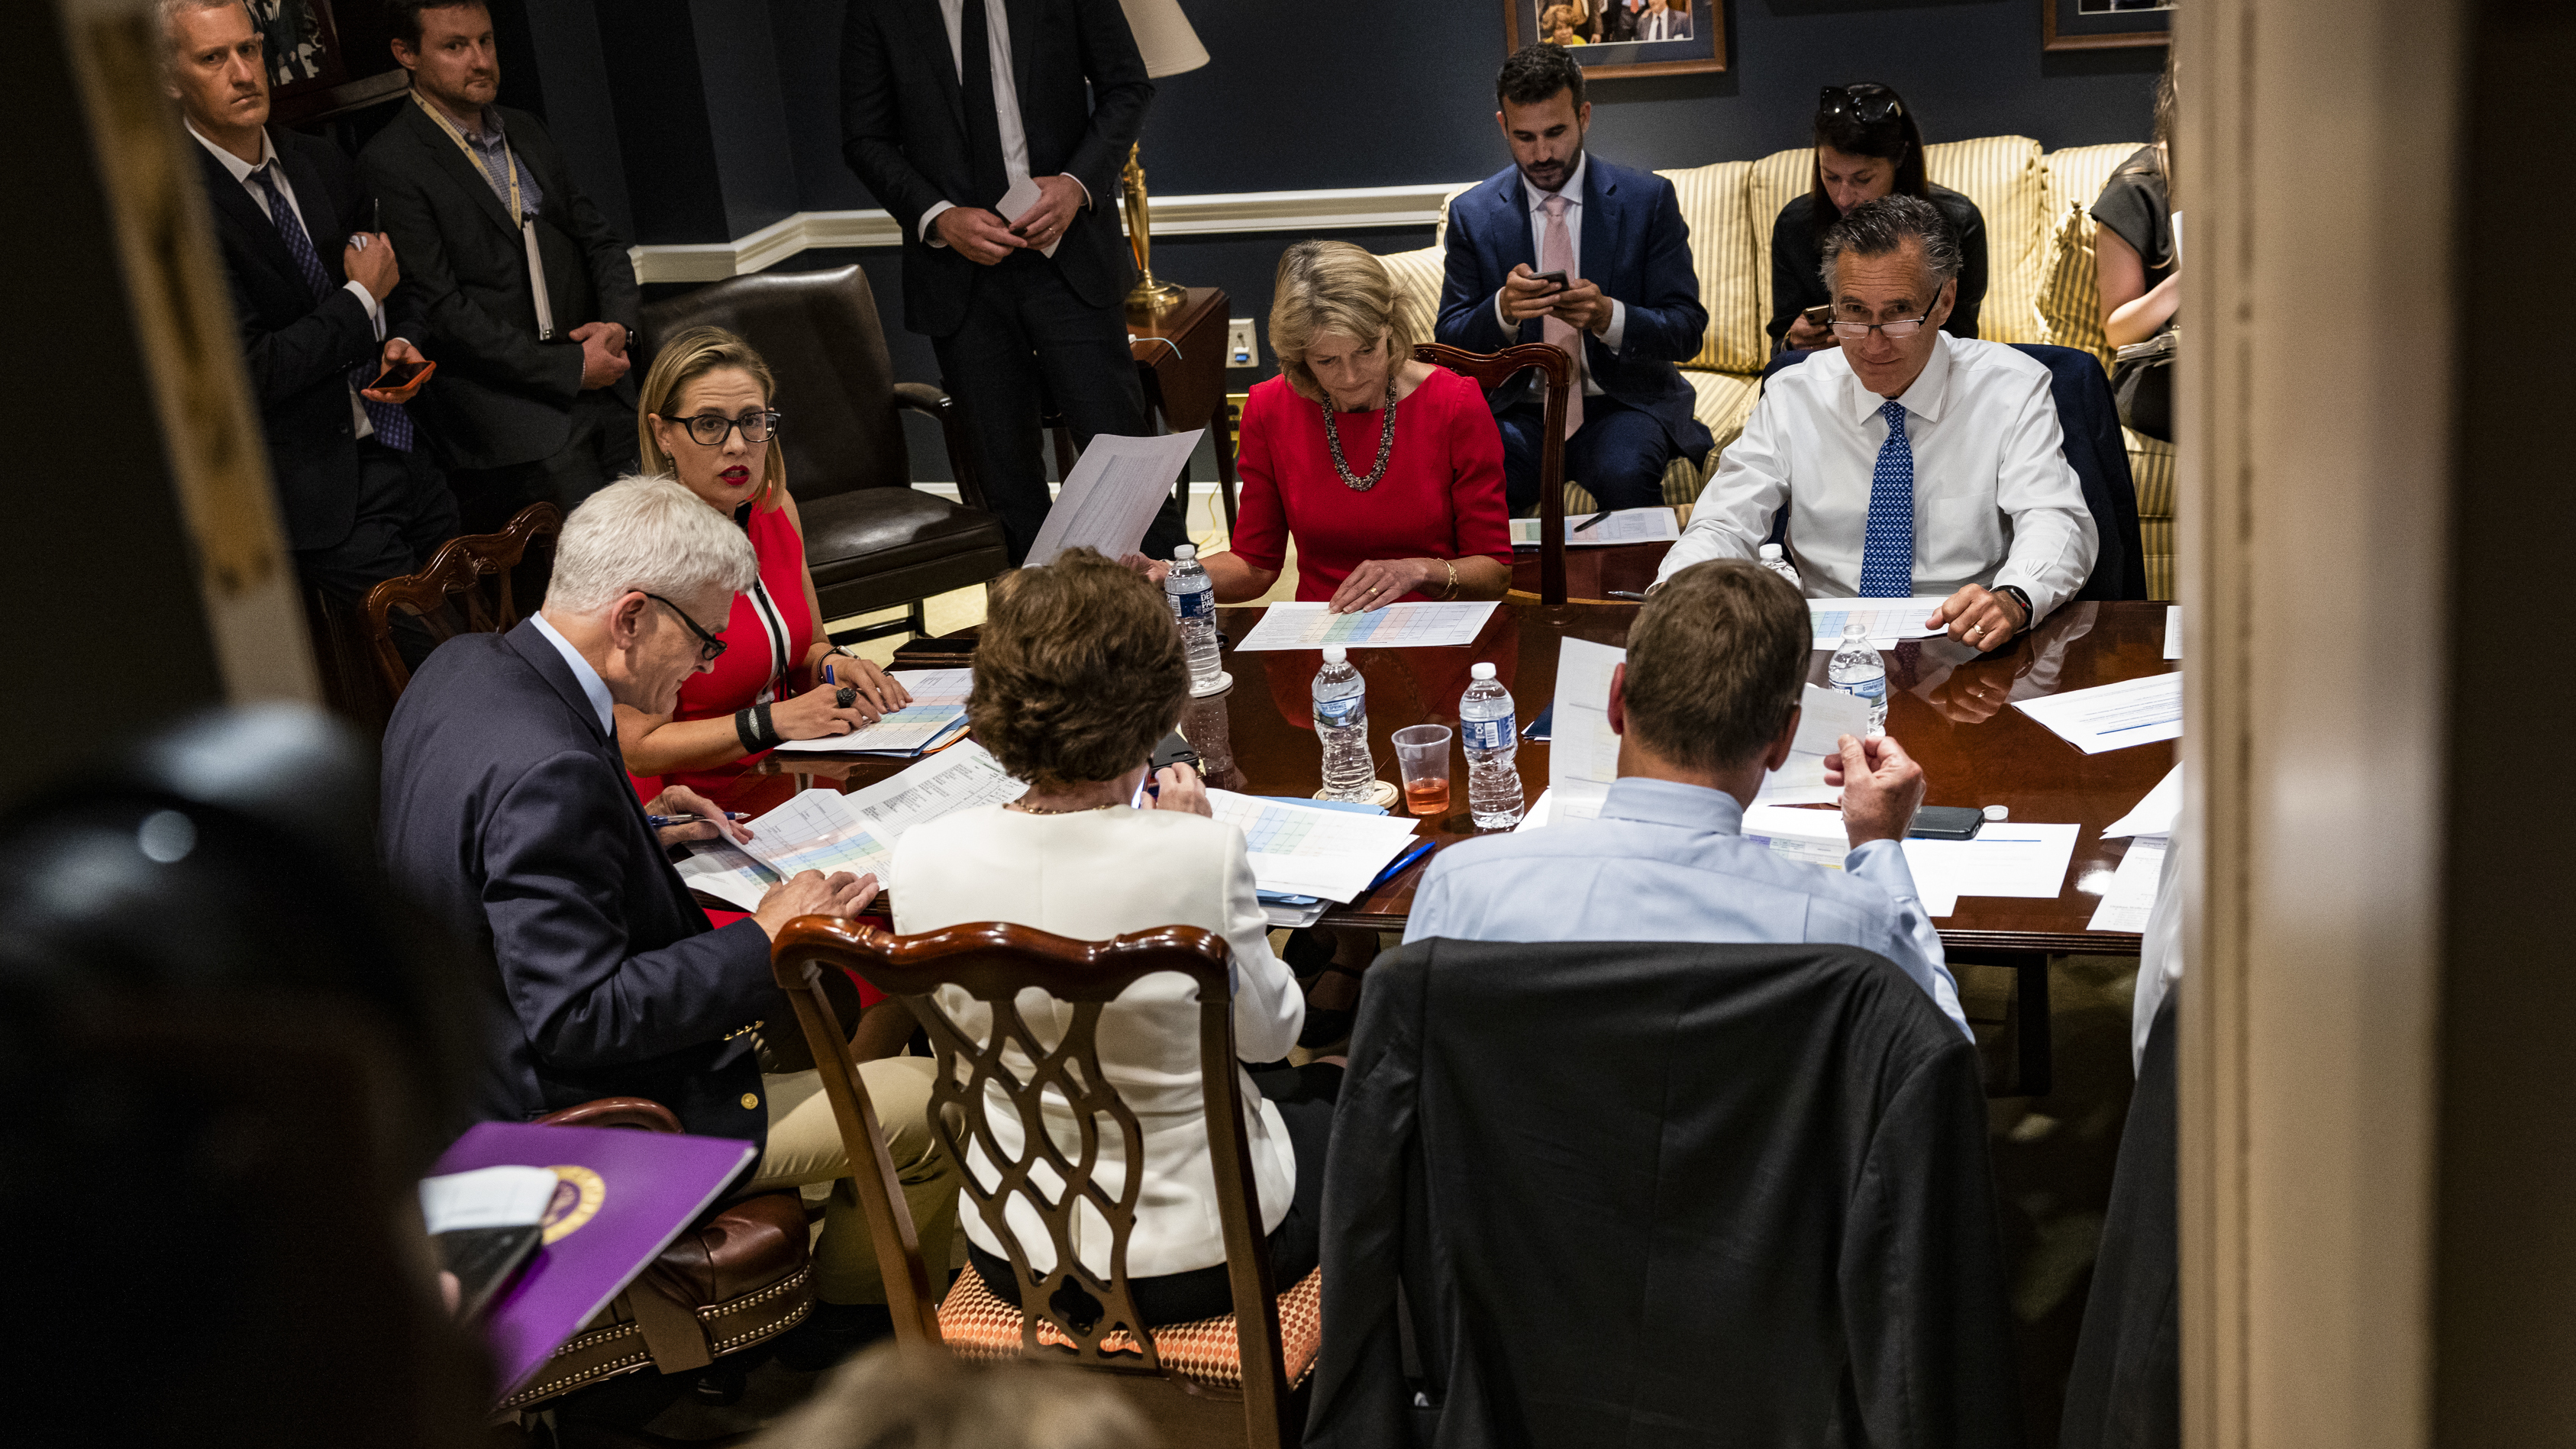 From left: Sens. Bill Cassidy, R-La., Kyrsten Sinema, D-Ariz., Lisa Murkowski, R-Alaska, Mitt Romney, R-Utah, and others hold a bipartisan meeting on infrastructure in the basement of the U.S. Capitol on Tuesday.